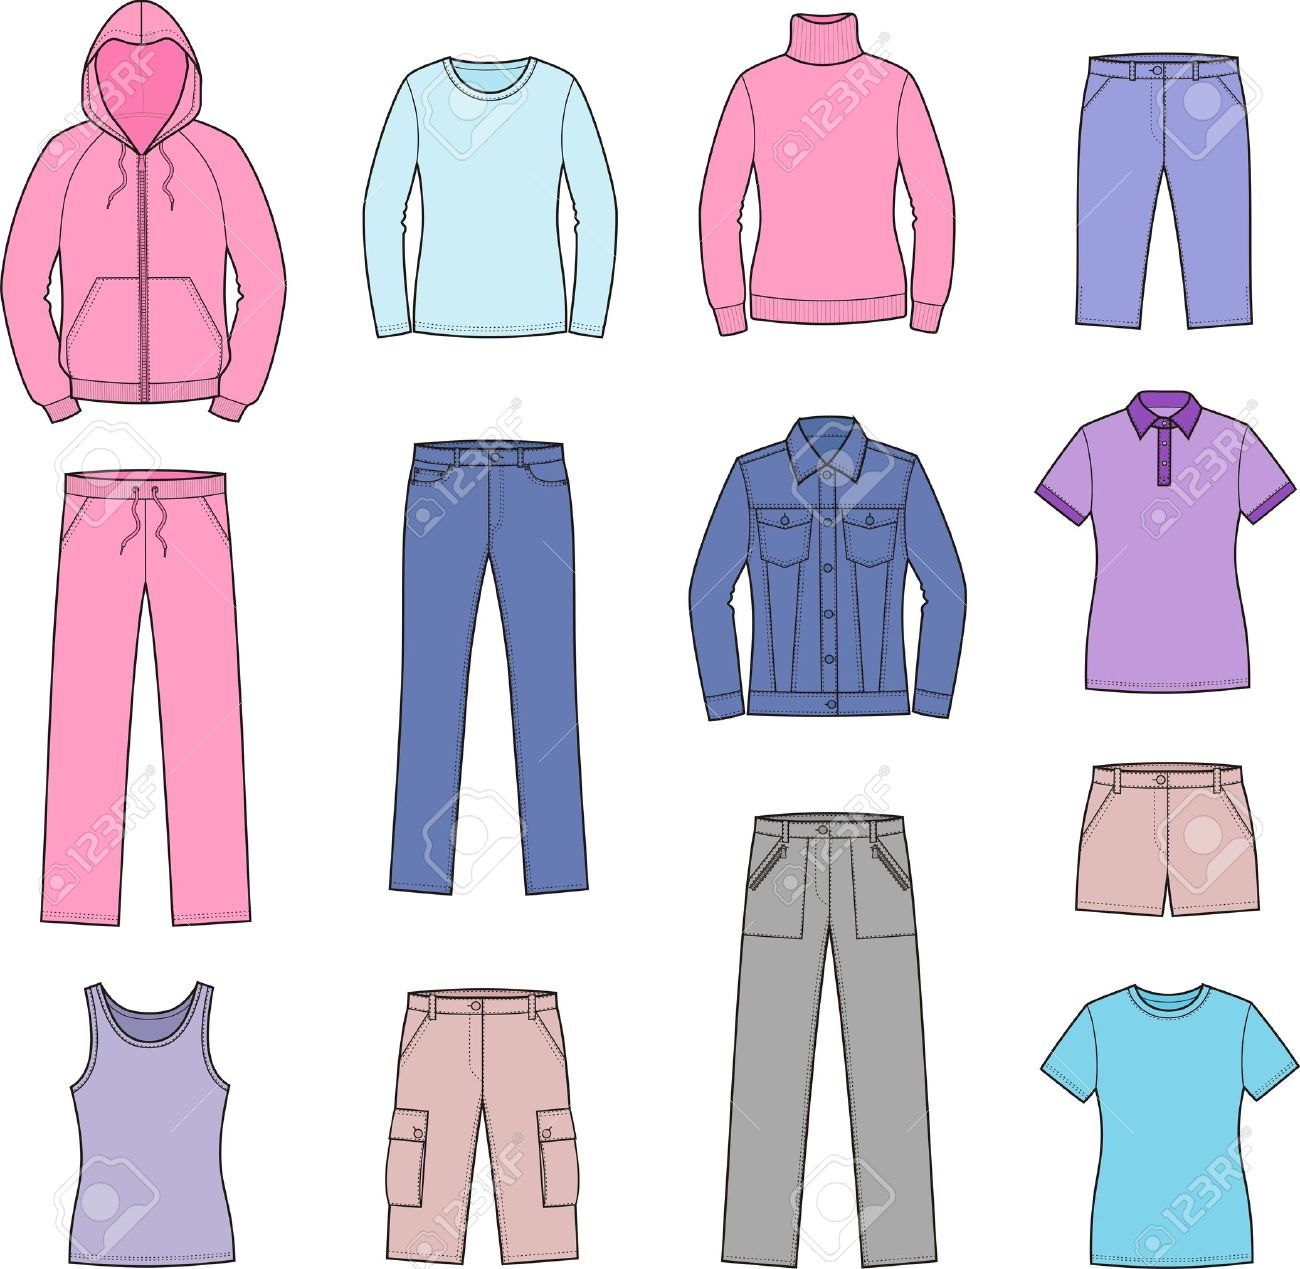 Free Women\'s Clothing Cliparts, Download Free Clip Art, Free.